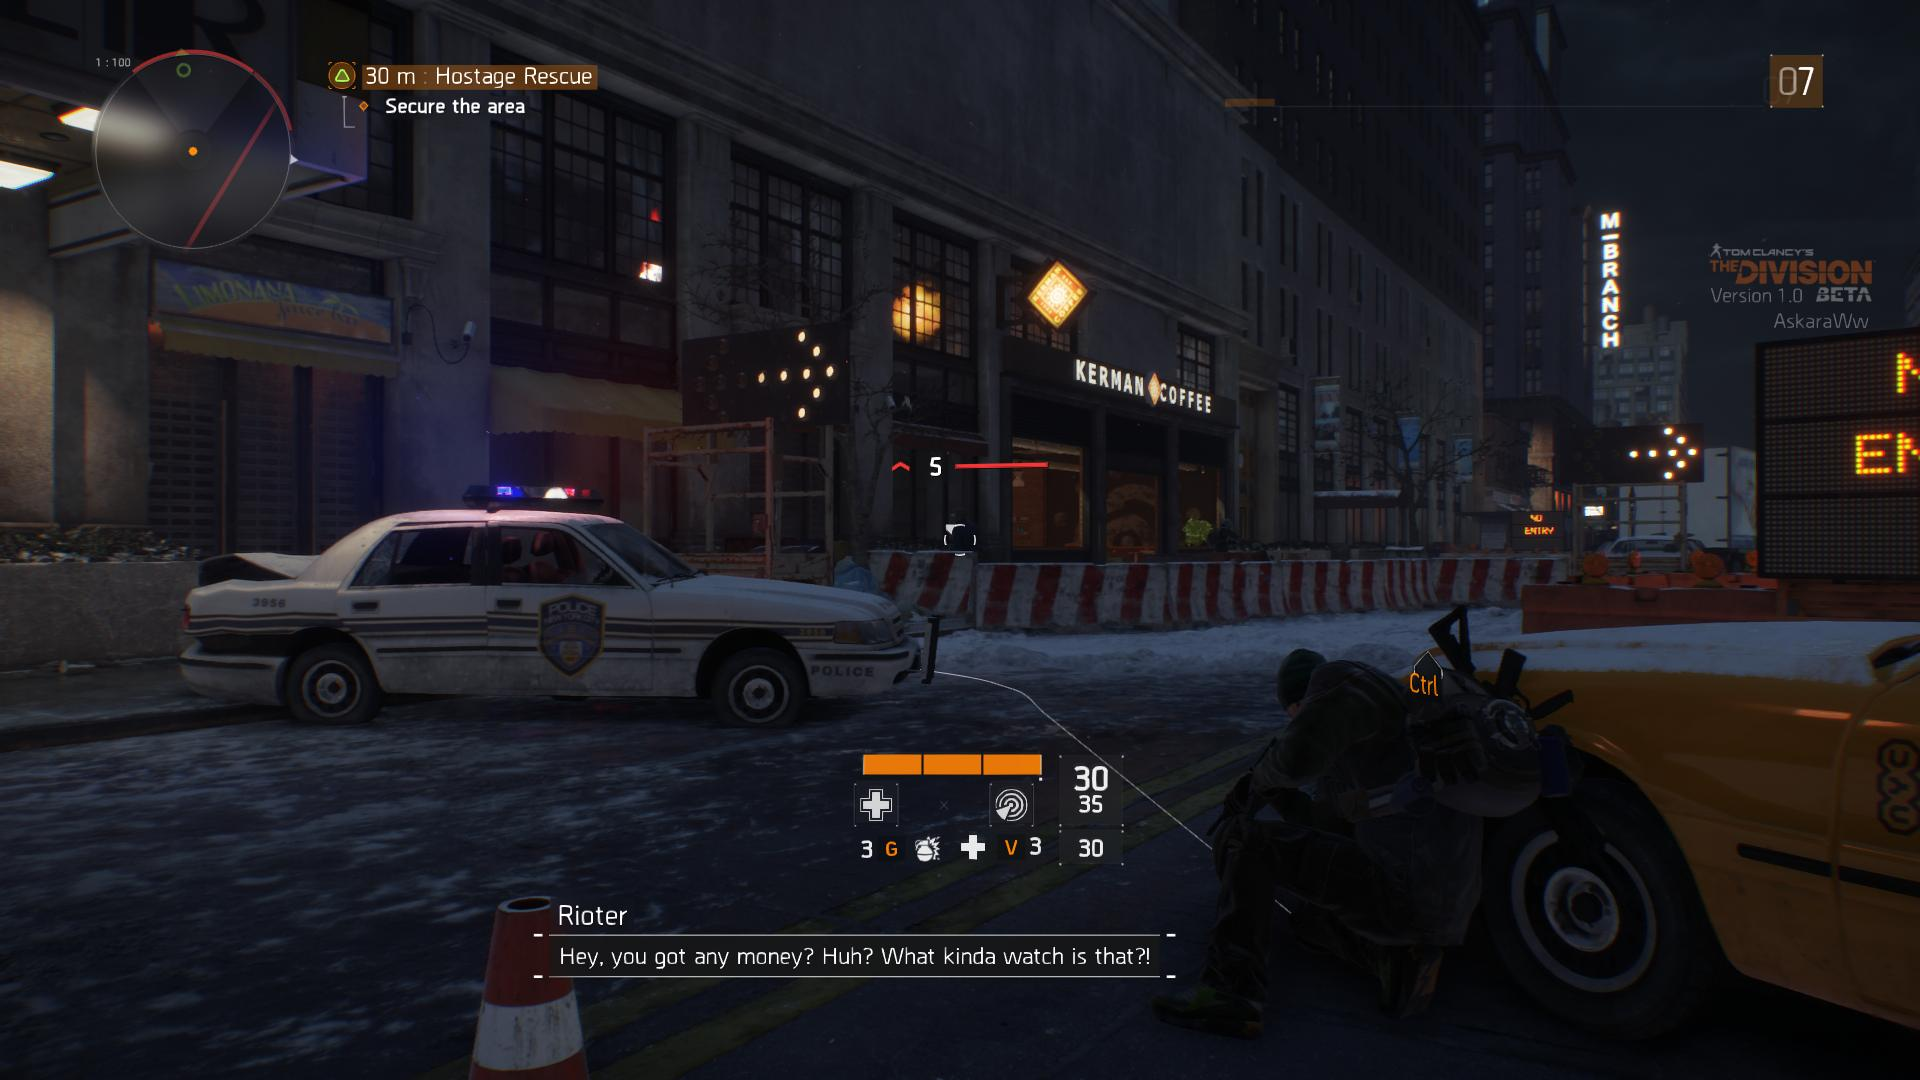 Tom Clancy's The Division Dojmy z Bety (PC) 11205